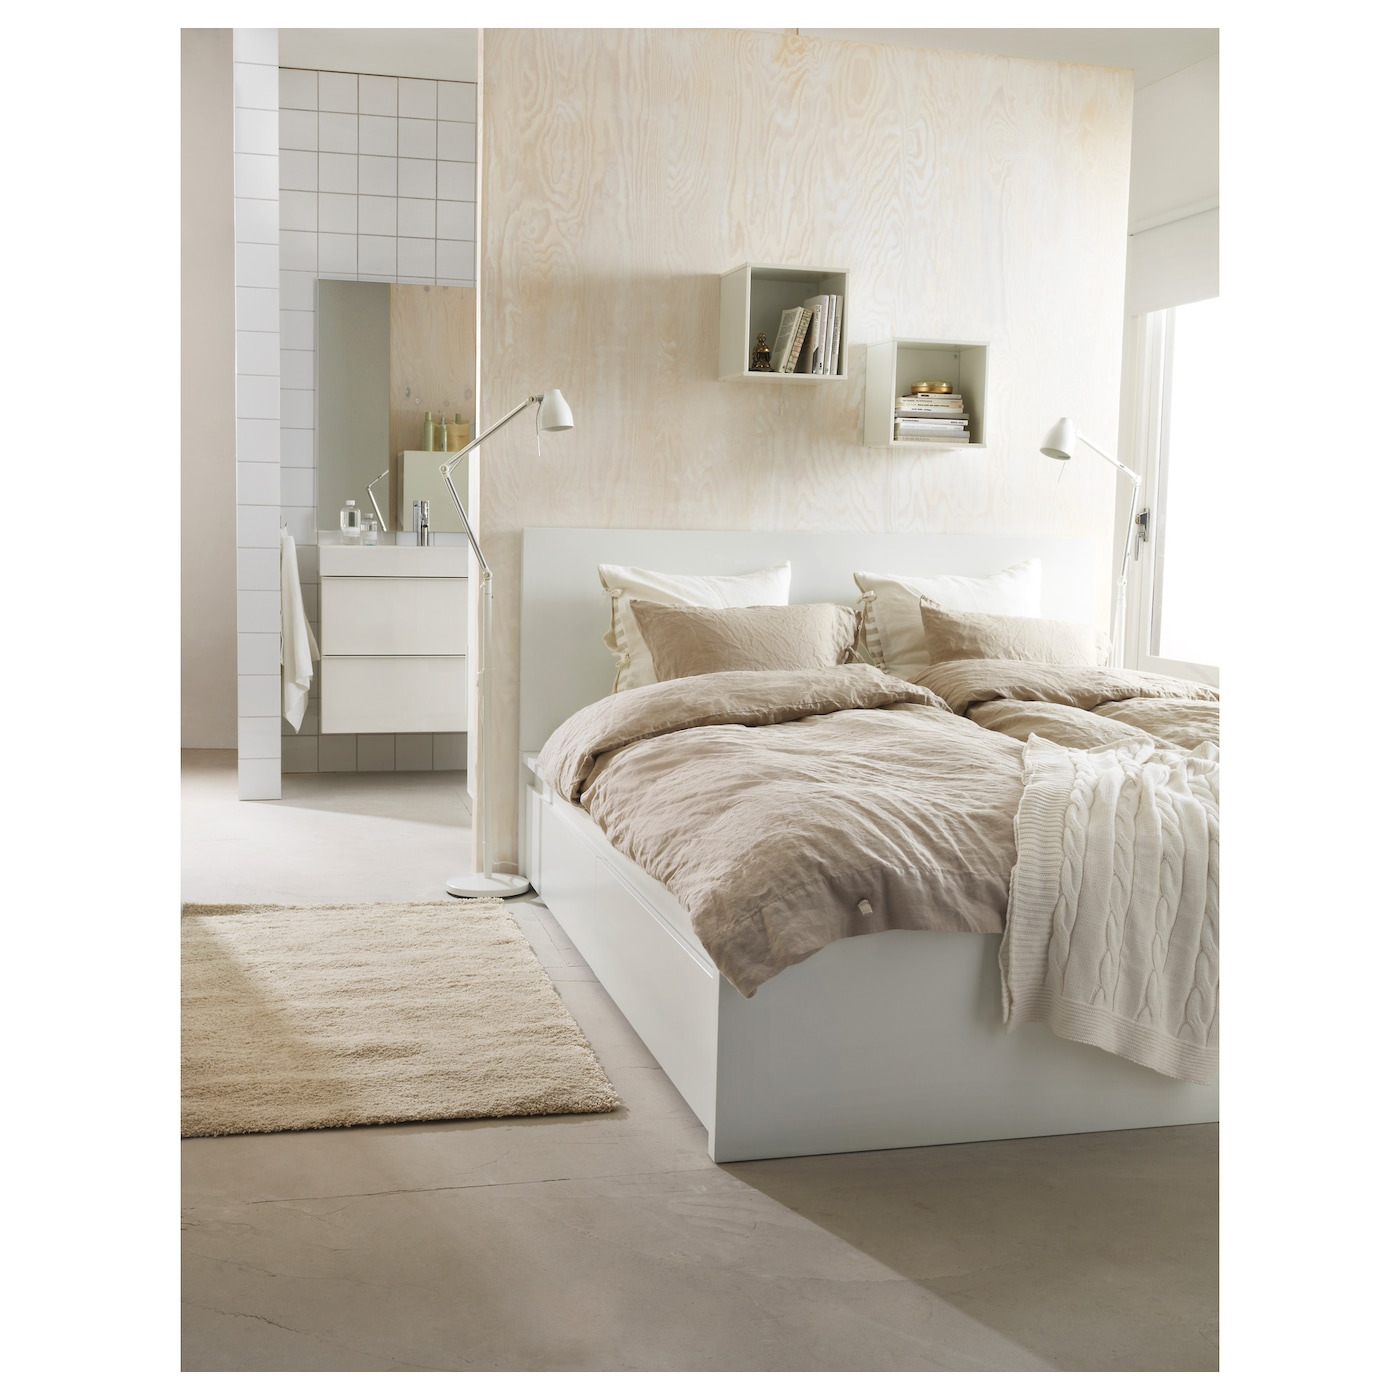 malm cadre lit haut 4rgt blanc 160x200 cm ikea. Black Bedroom Furniture Sets. Home Design Ideas